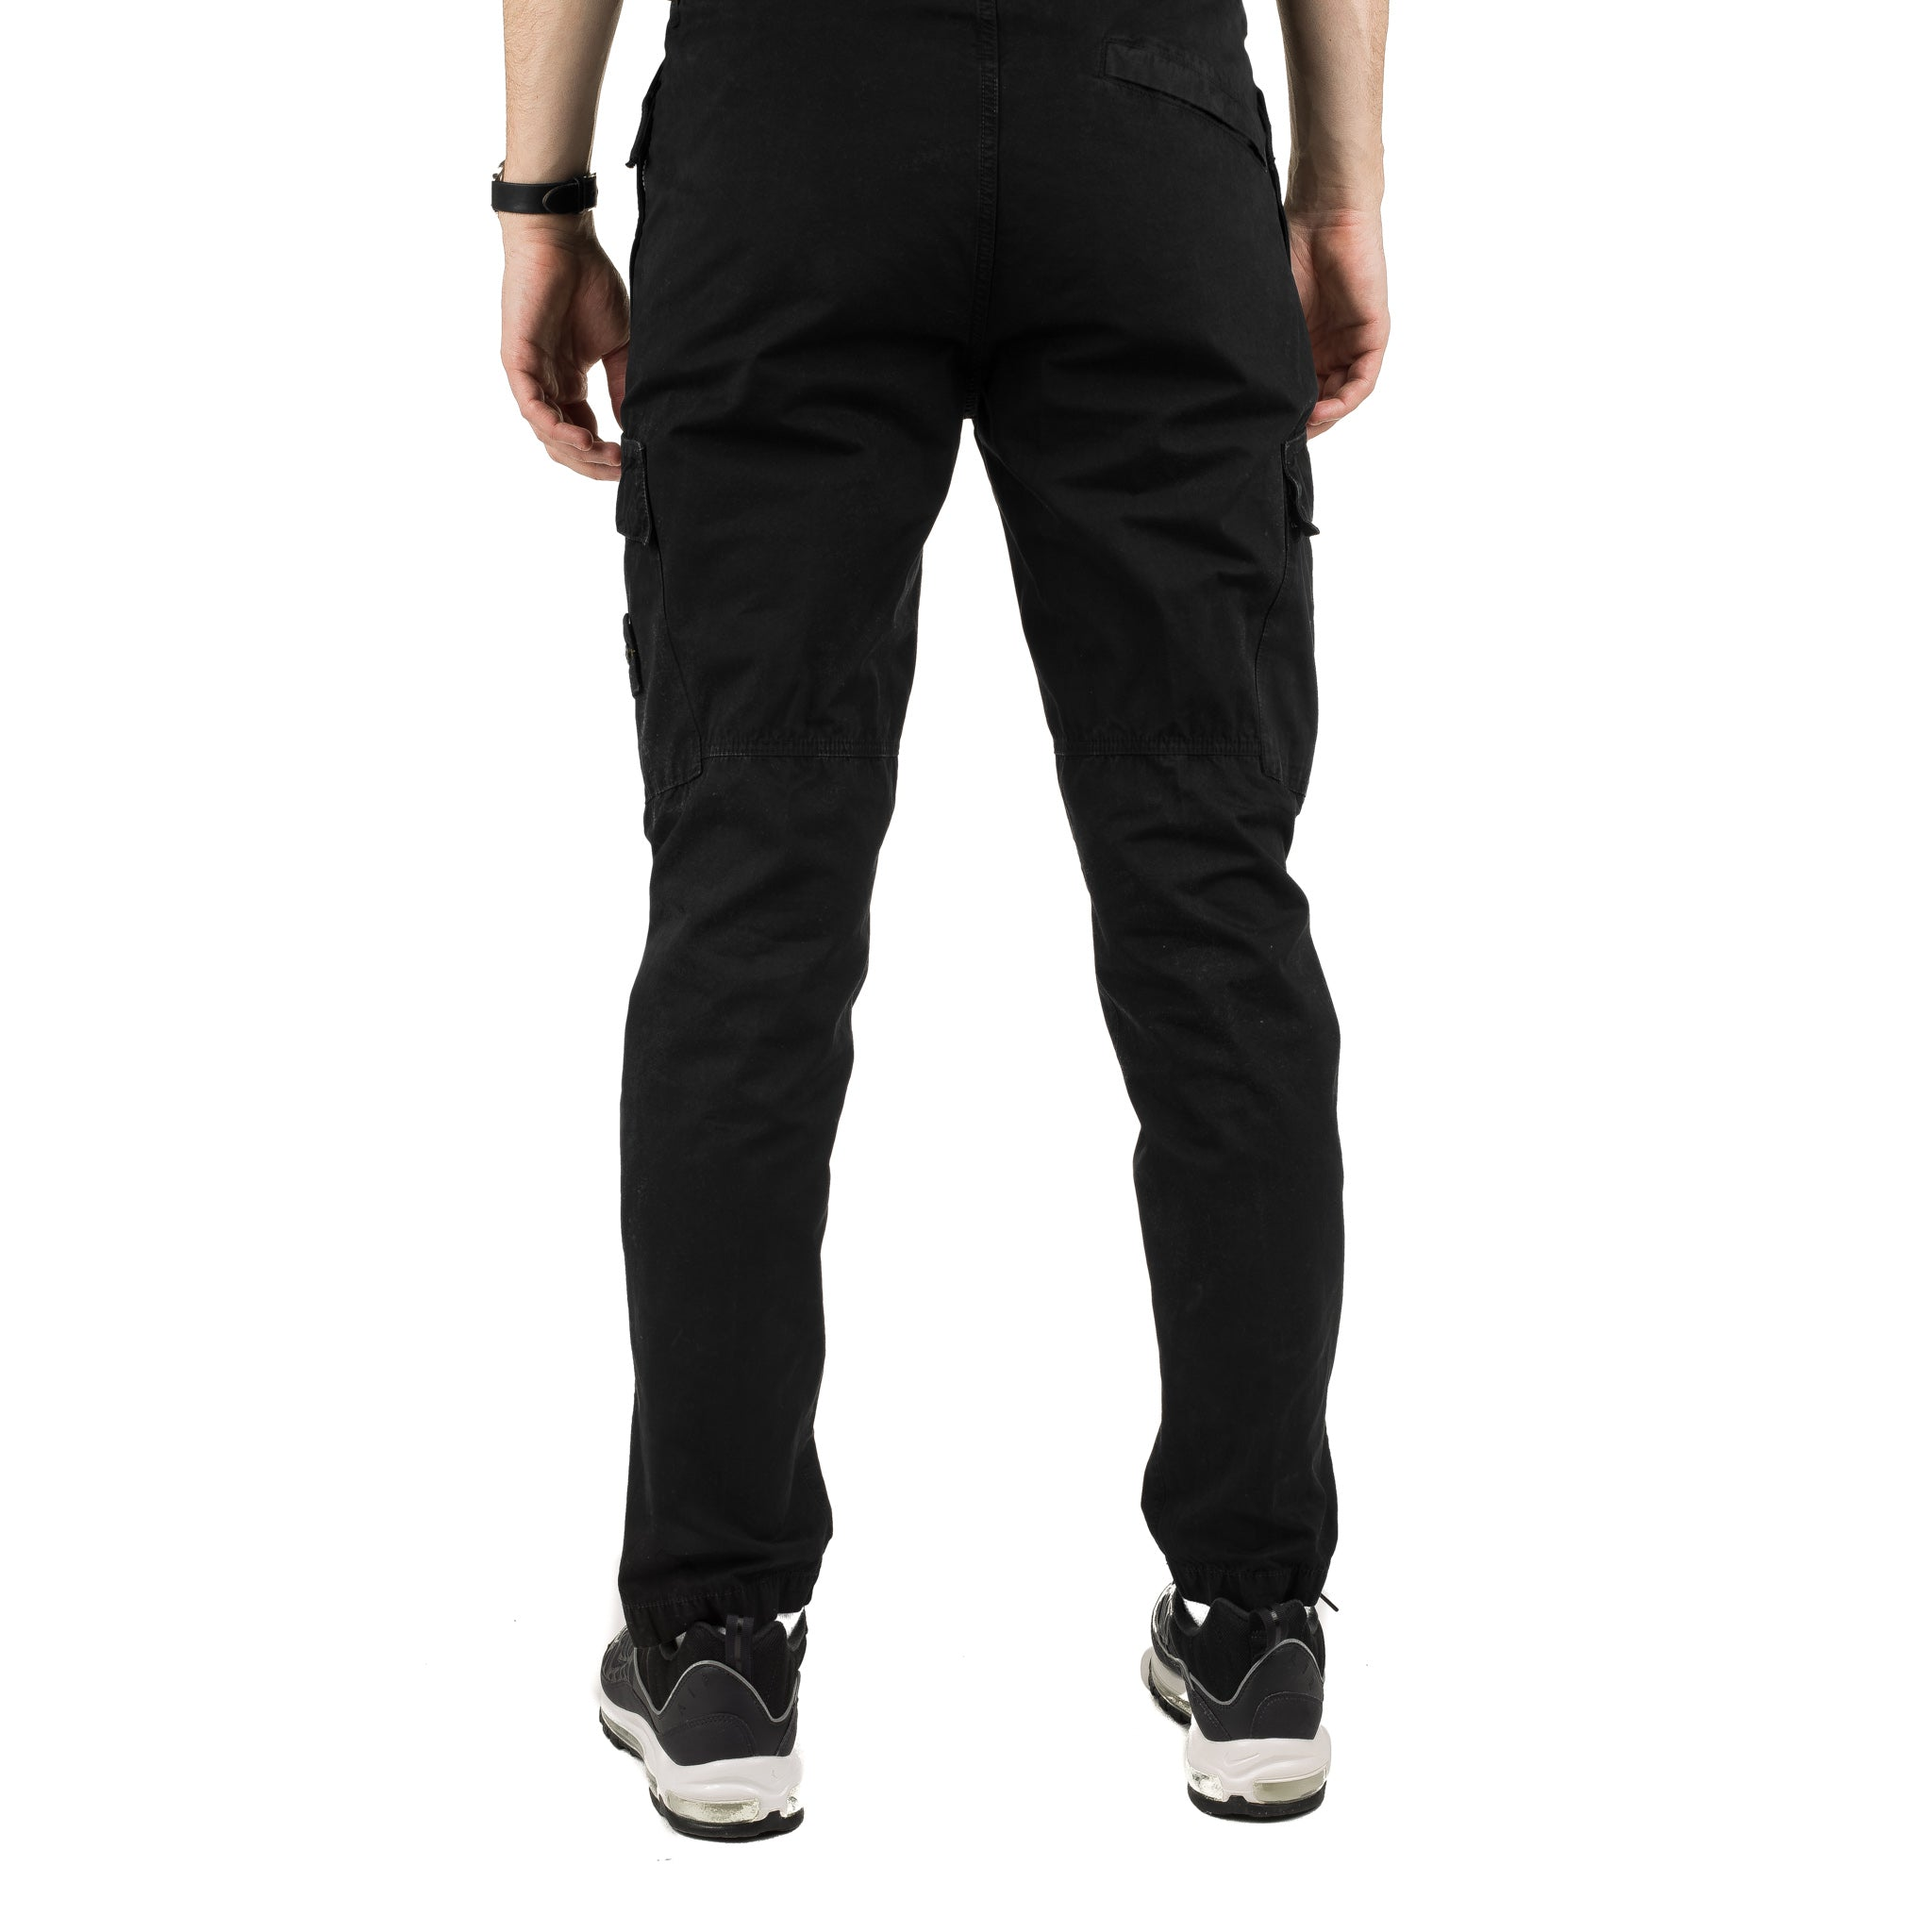 6494b34b46a5b Old Dye Treatment Cargo Pant Black 7015319WA V0129 – Capsule Online